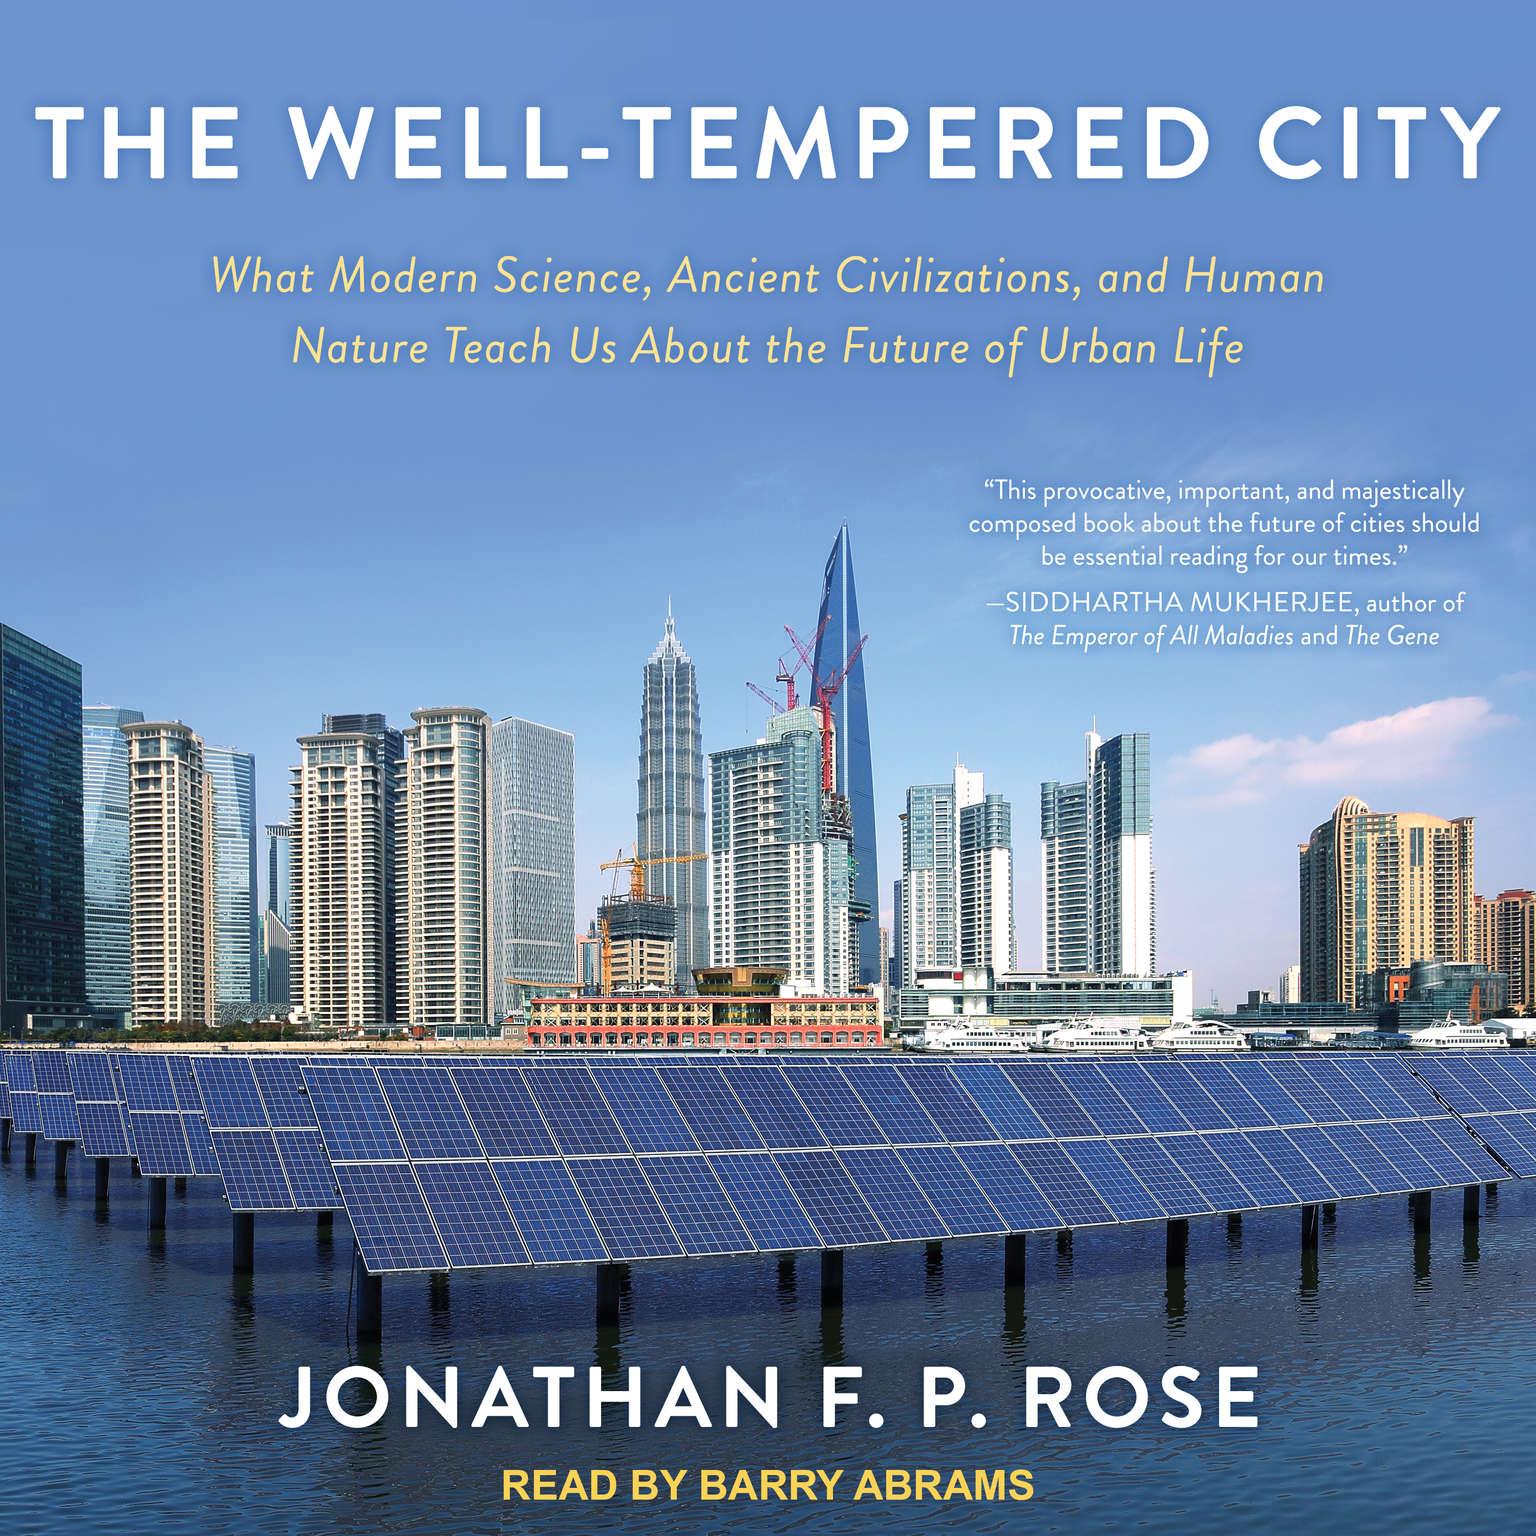 The Well-Tempered City: What Modern Science, Ancient Civilizations, and Human Nature Teach Us About the Future of Urban Life Audiobook, by Jonathan F. P. Rose